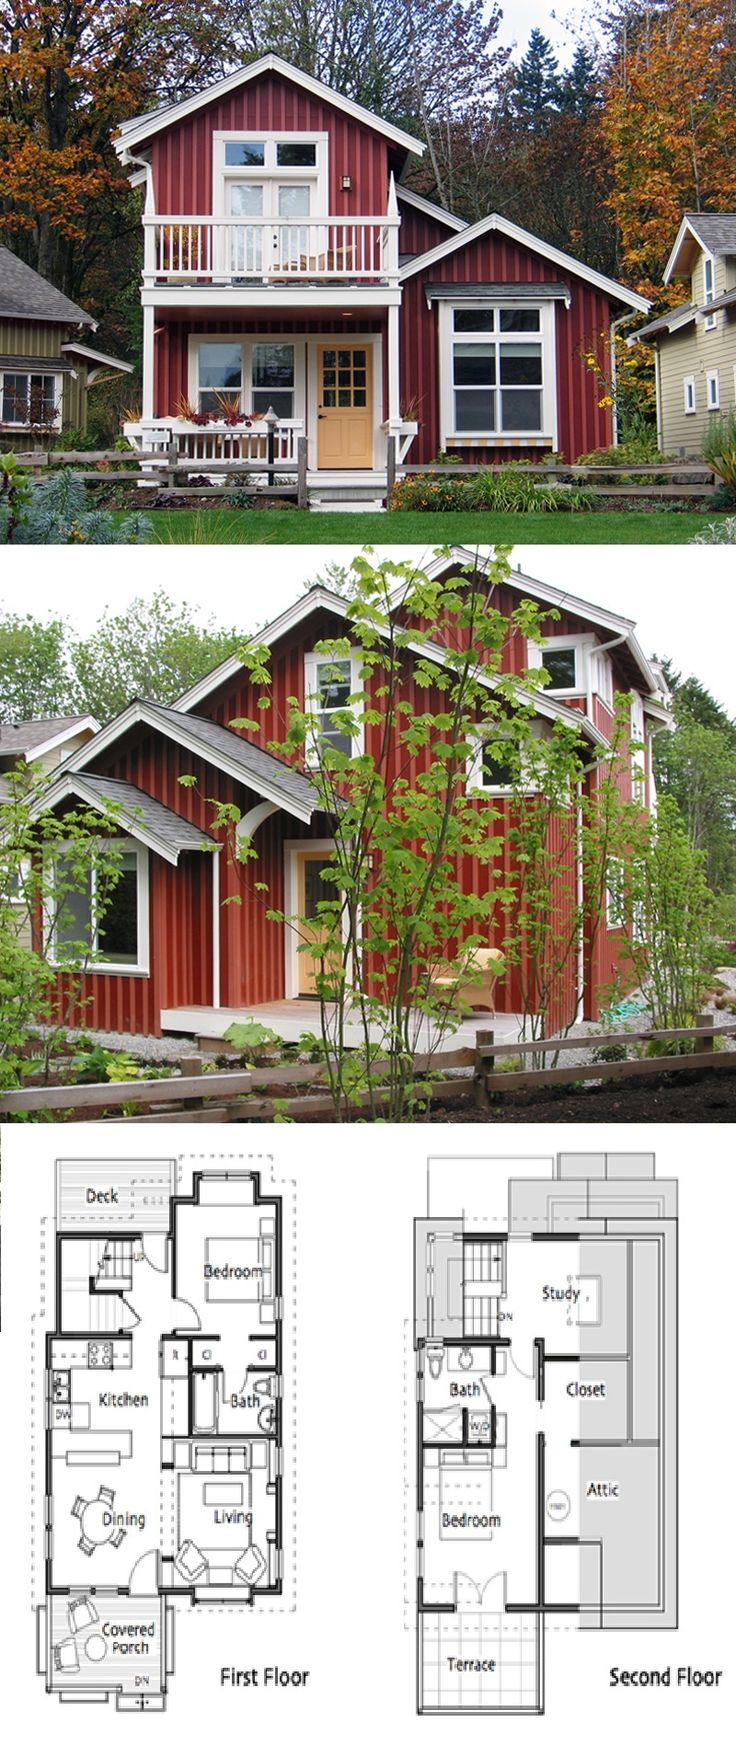 1279 Best Homes Images On Pinterest Tiny House Community Aluminum Wiring In Alberta Cottage Plans Small Cabin Designed By Ross Chapin